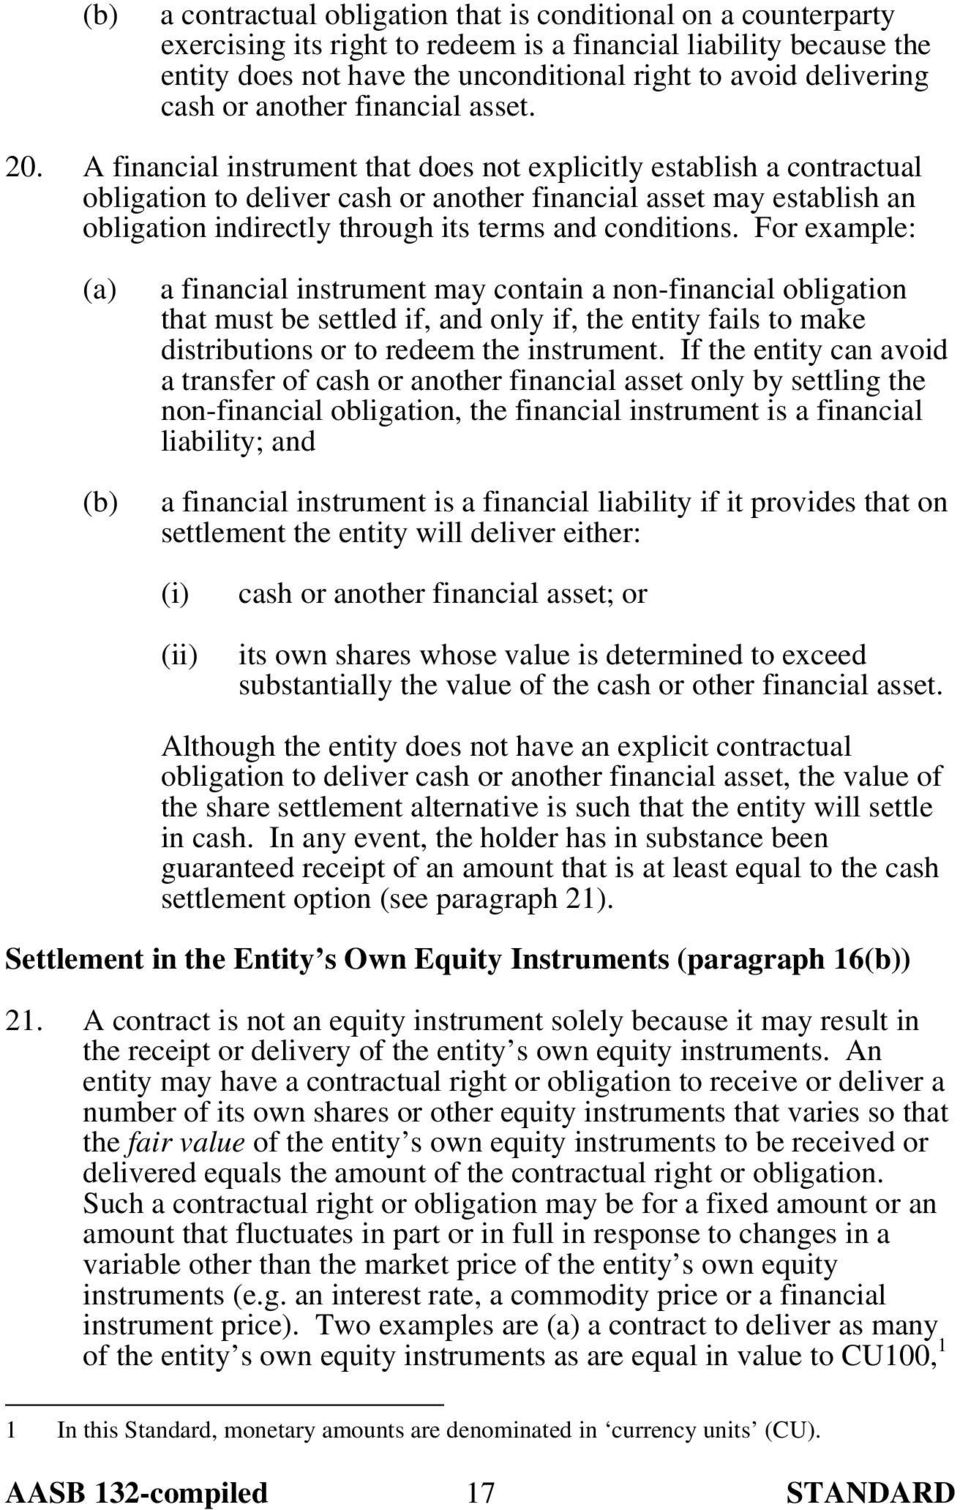 A financial instrument that does not explicitly establish a contractual obligation to deliver cash or another financial asset may establish an obligation indirectly through its terms and conditions.